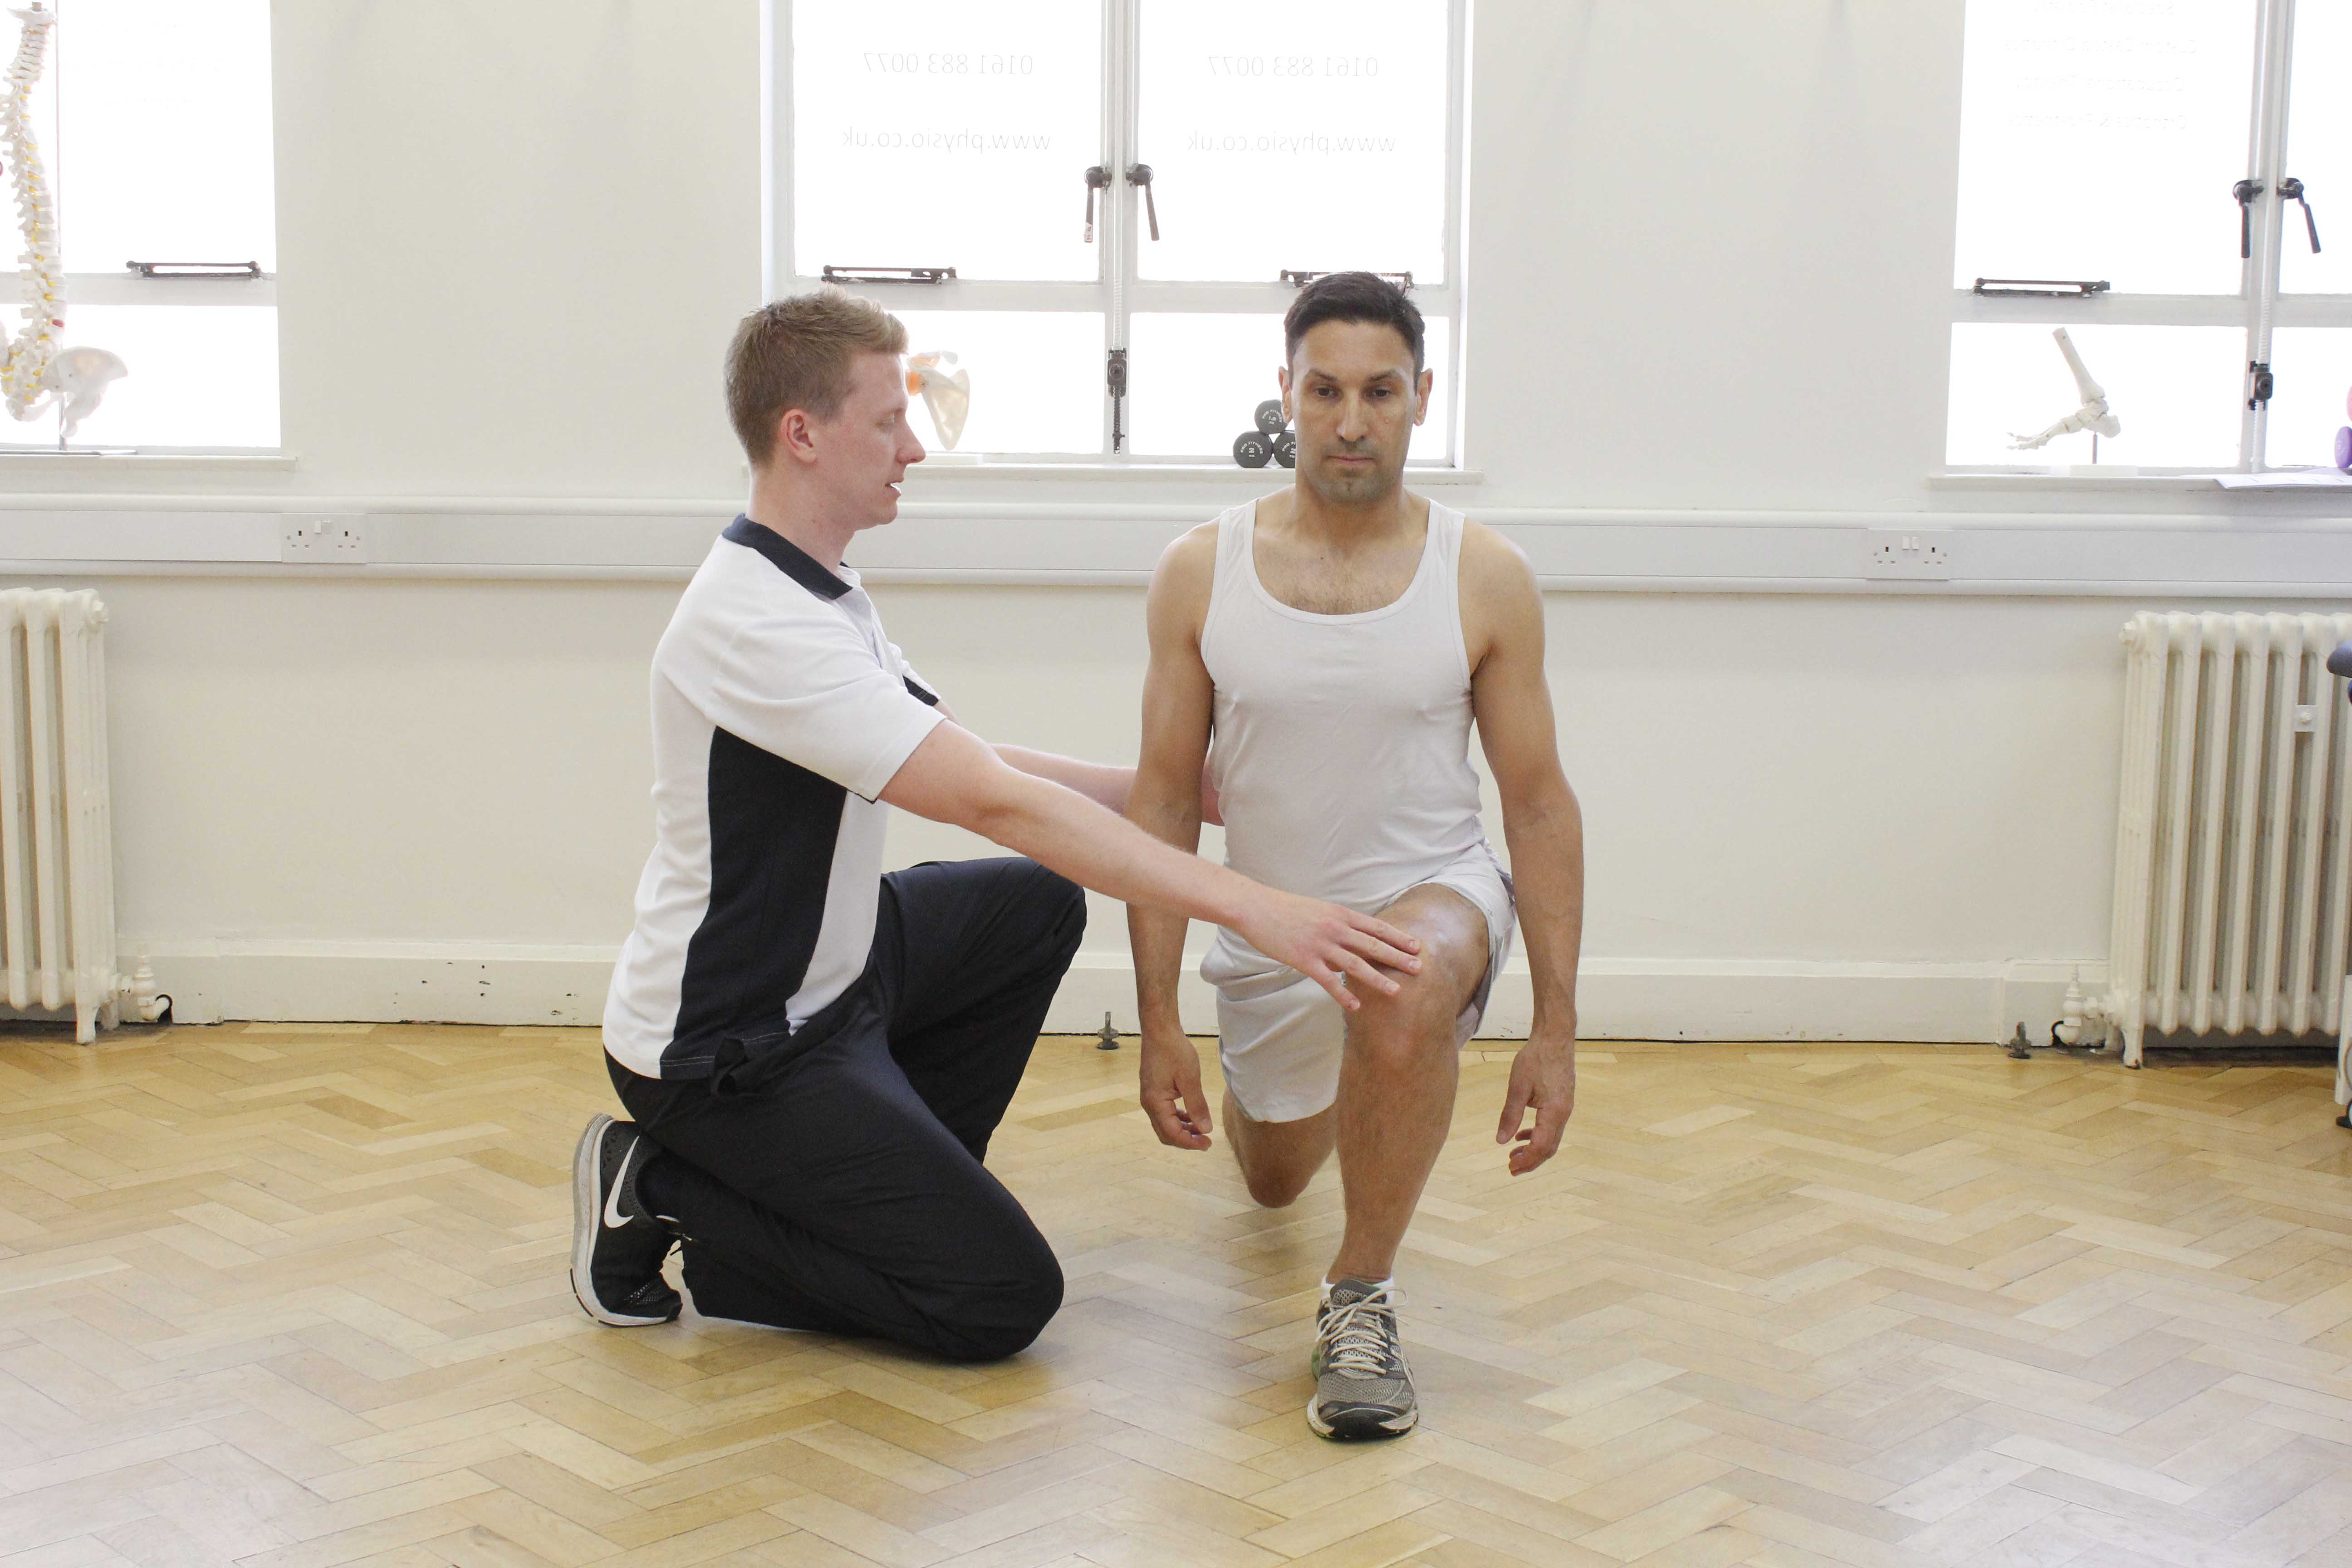 Sports rehabilitation exercises supervised by an experienced physiotherapist